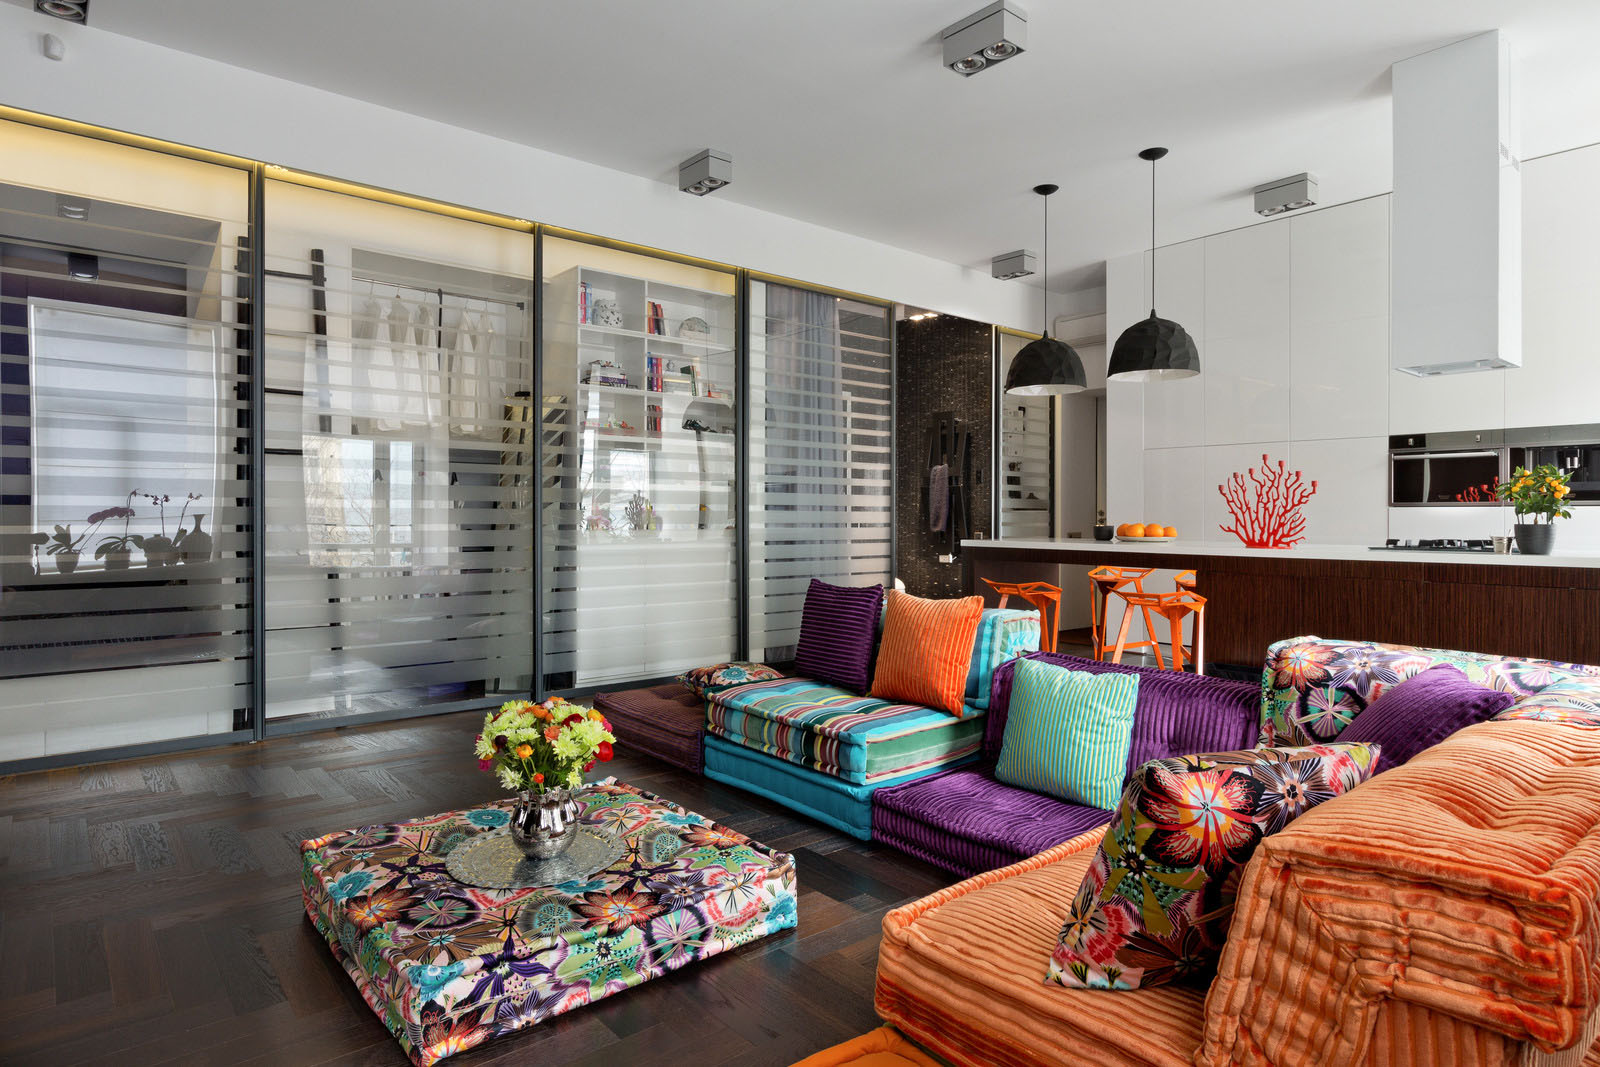 Modern Apartment with Colorful Decor